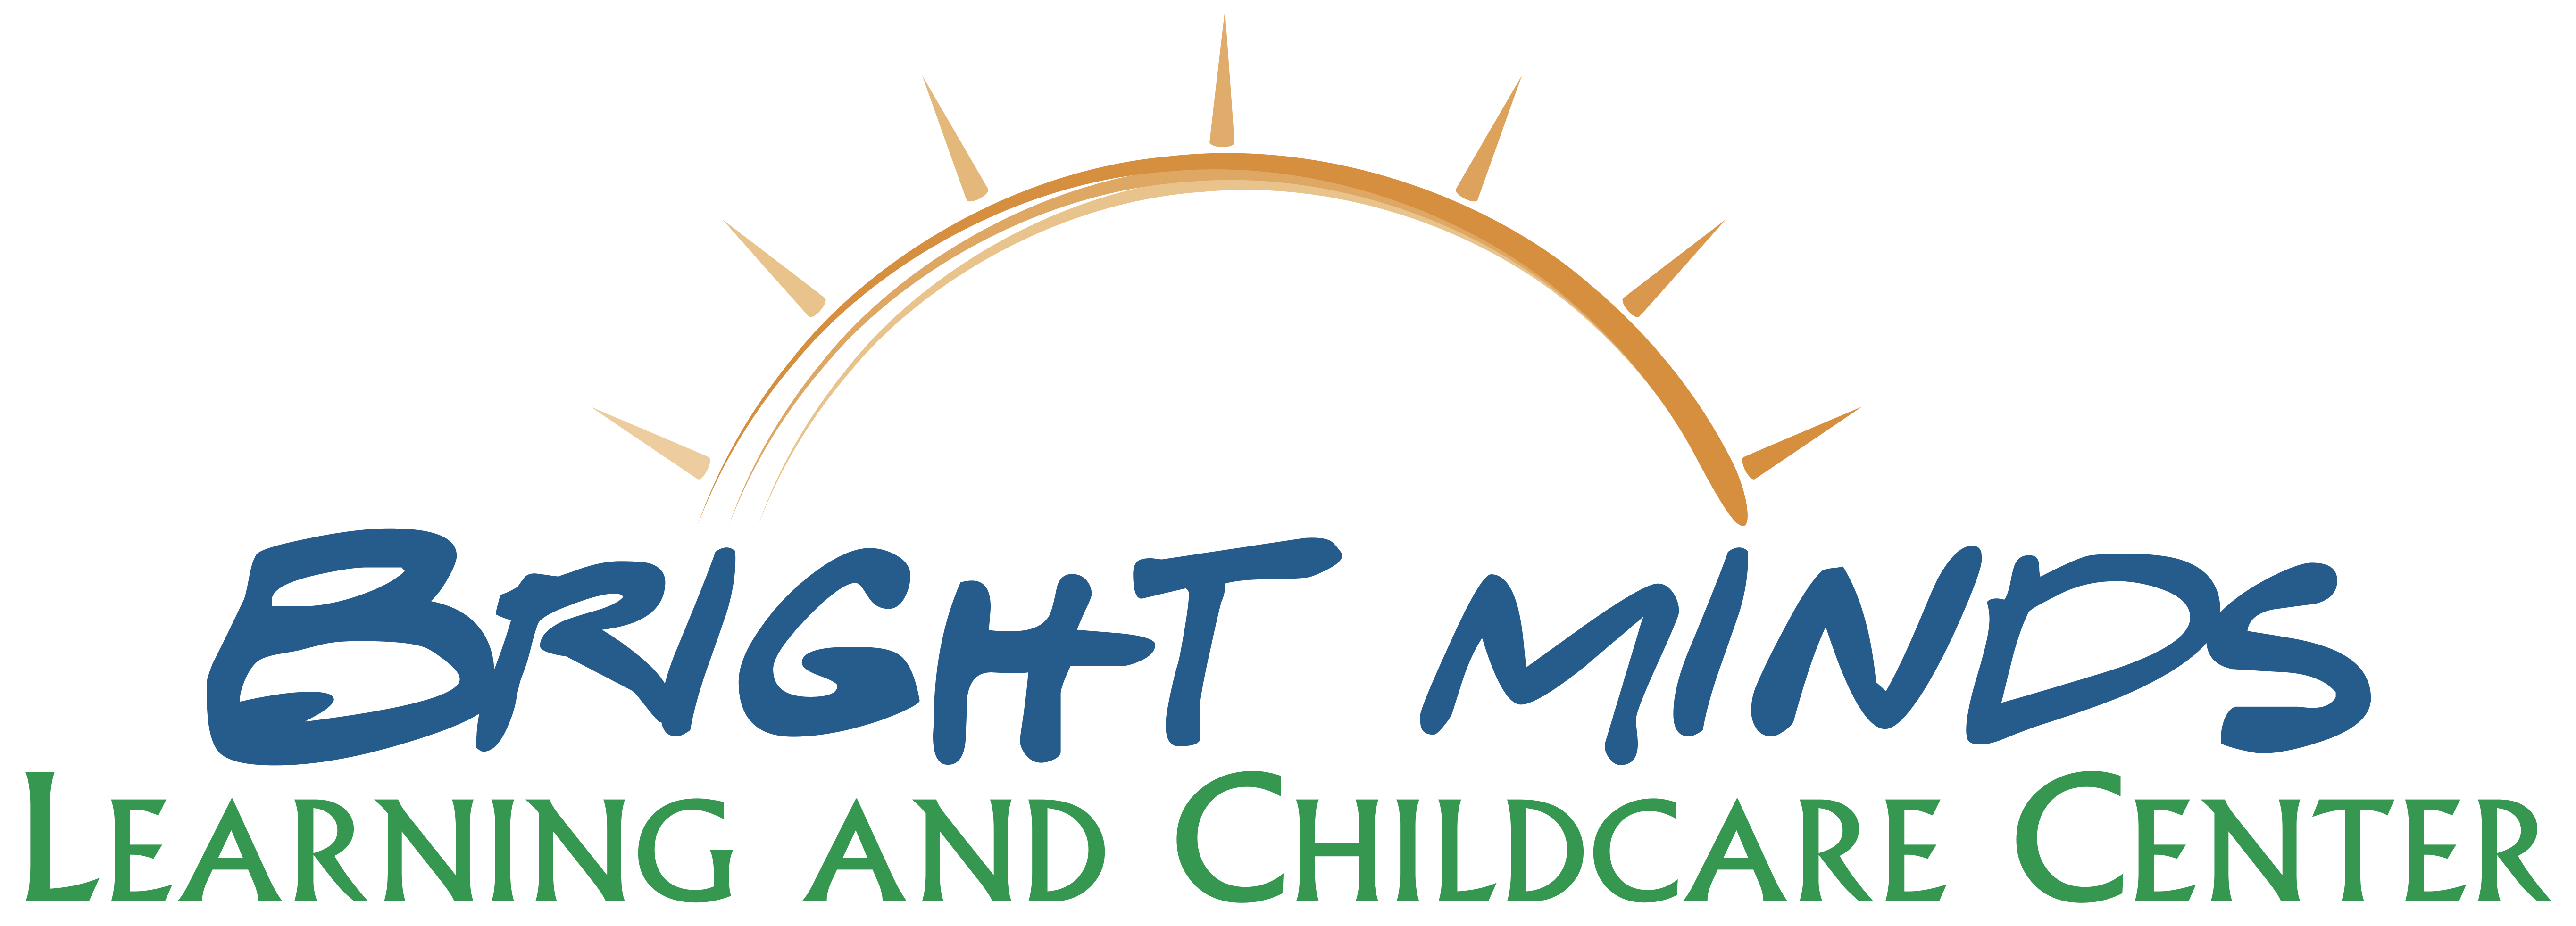 Bright Minds Learning & Childcare Center